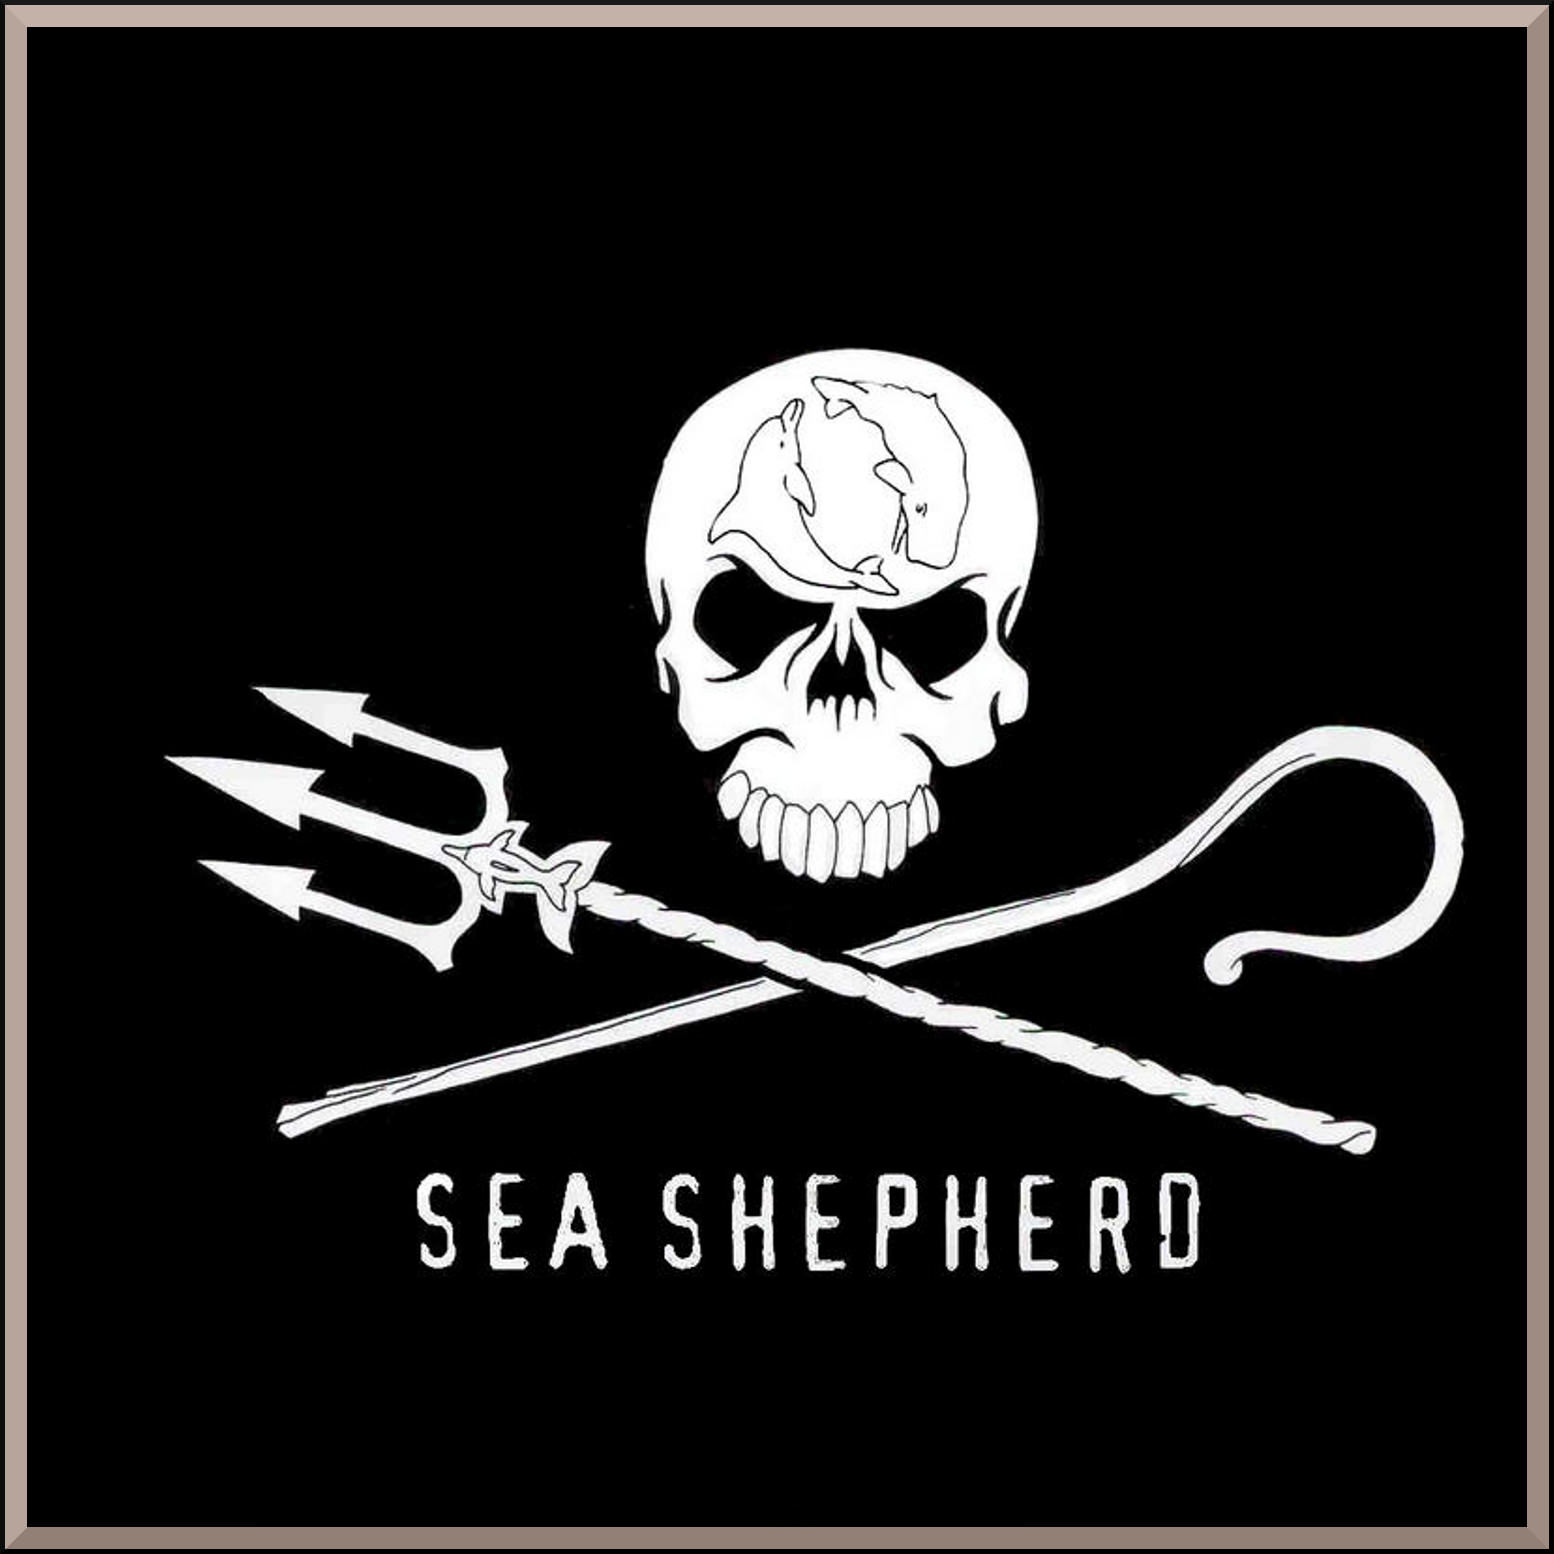 LOGO%20SEA%20SHEPHERD